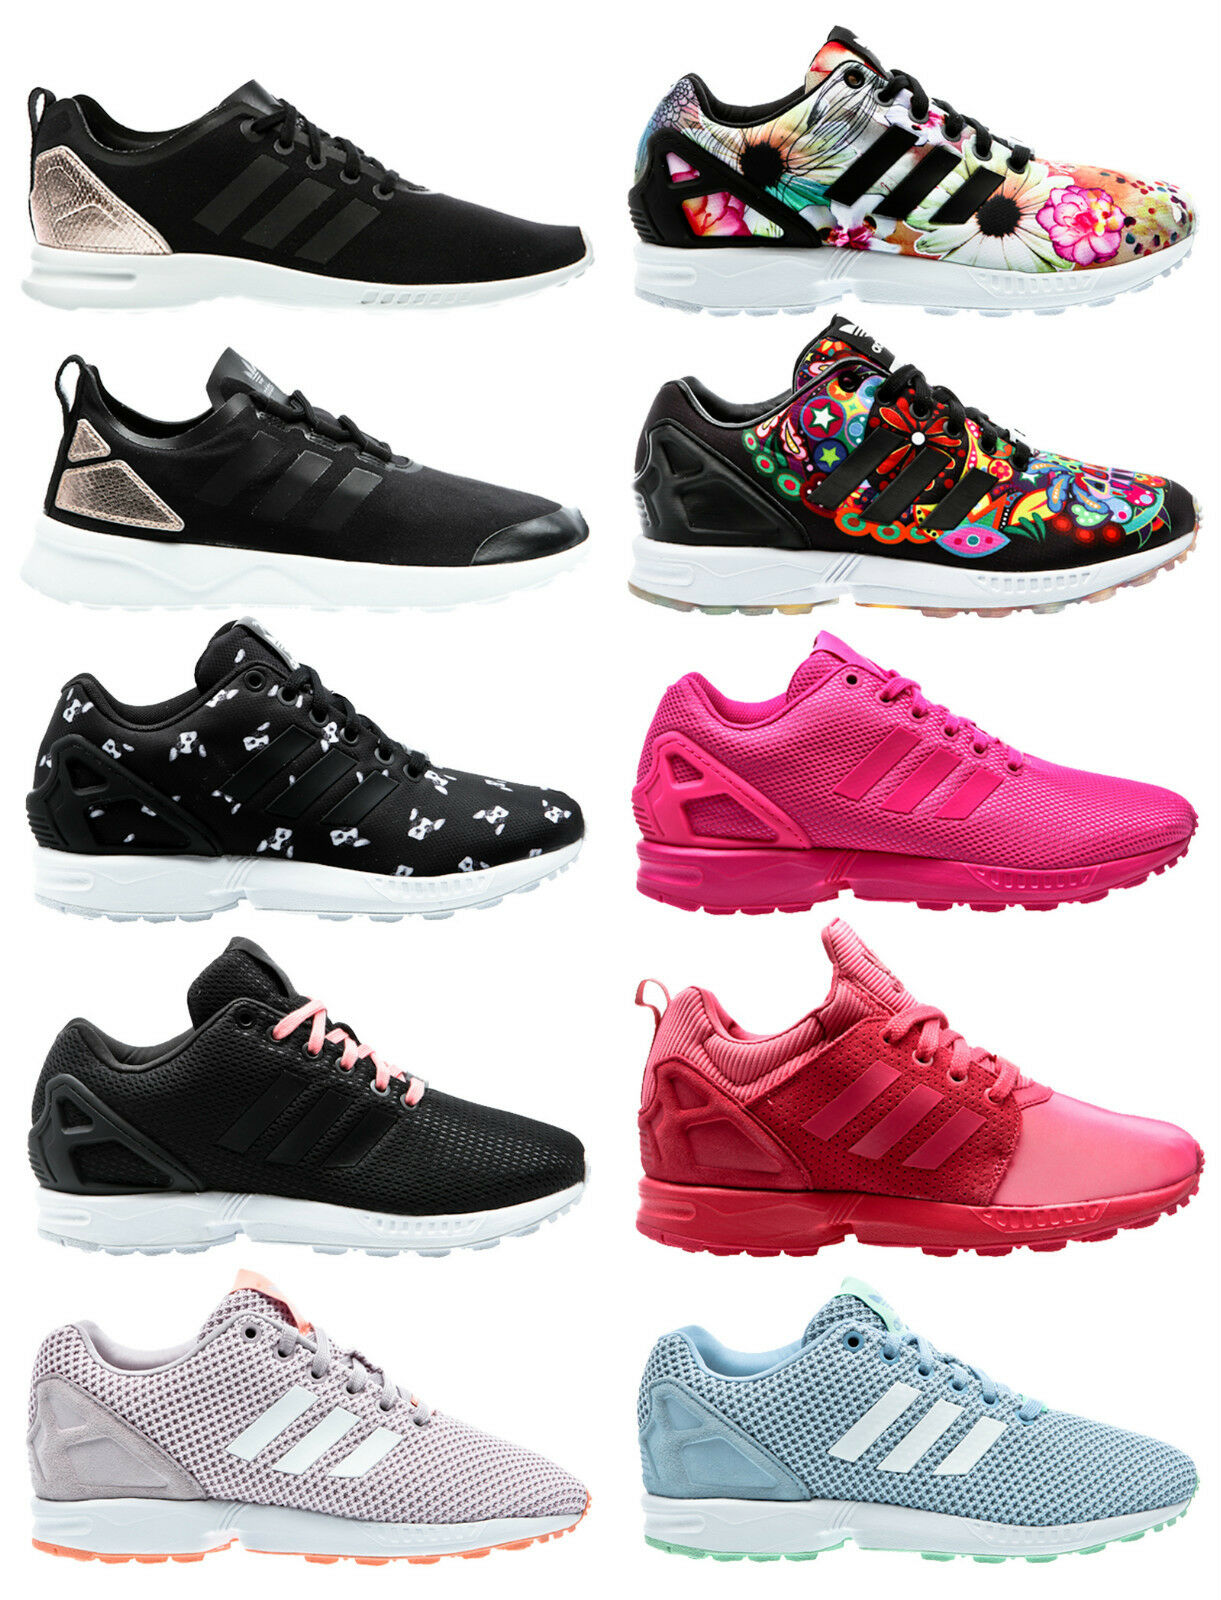 ADIDAS ORIGINALS ZX FLUX W Adv Smooth Women Sneaker Women's Shoes Shoes